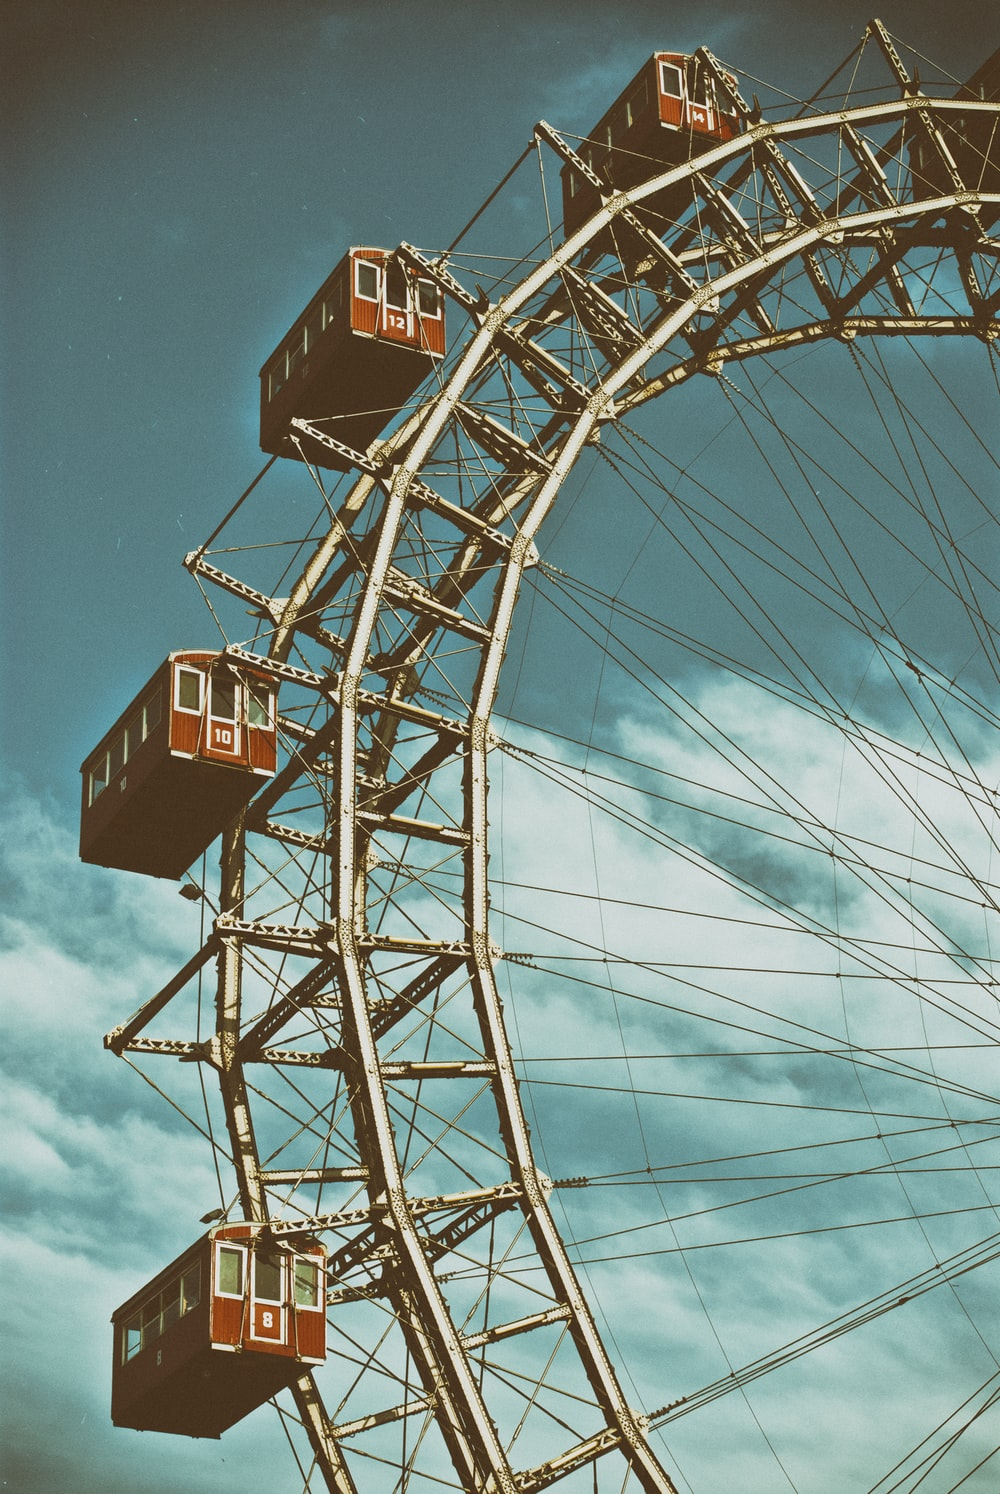 red and white ferris wheel